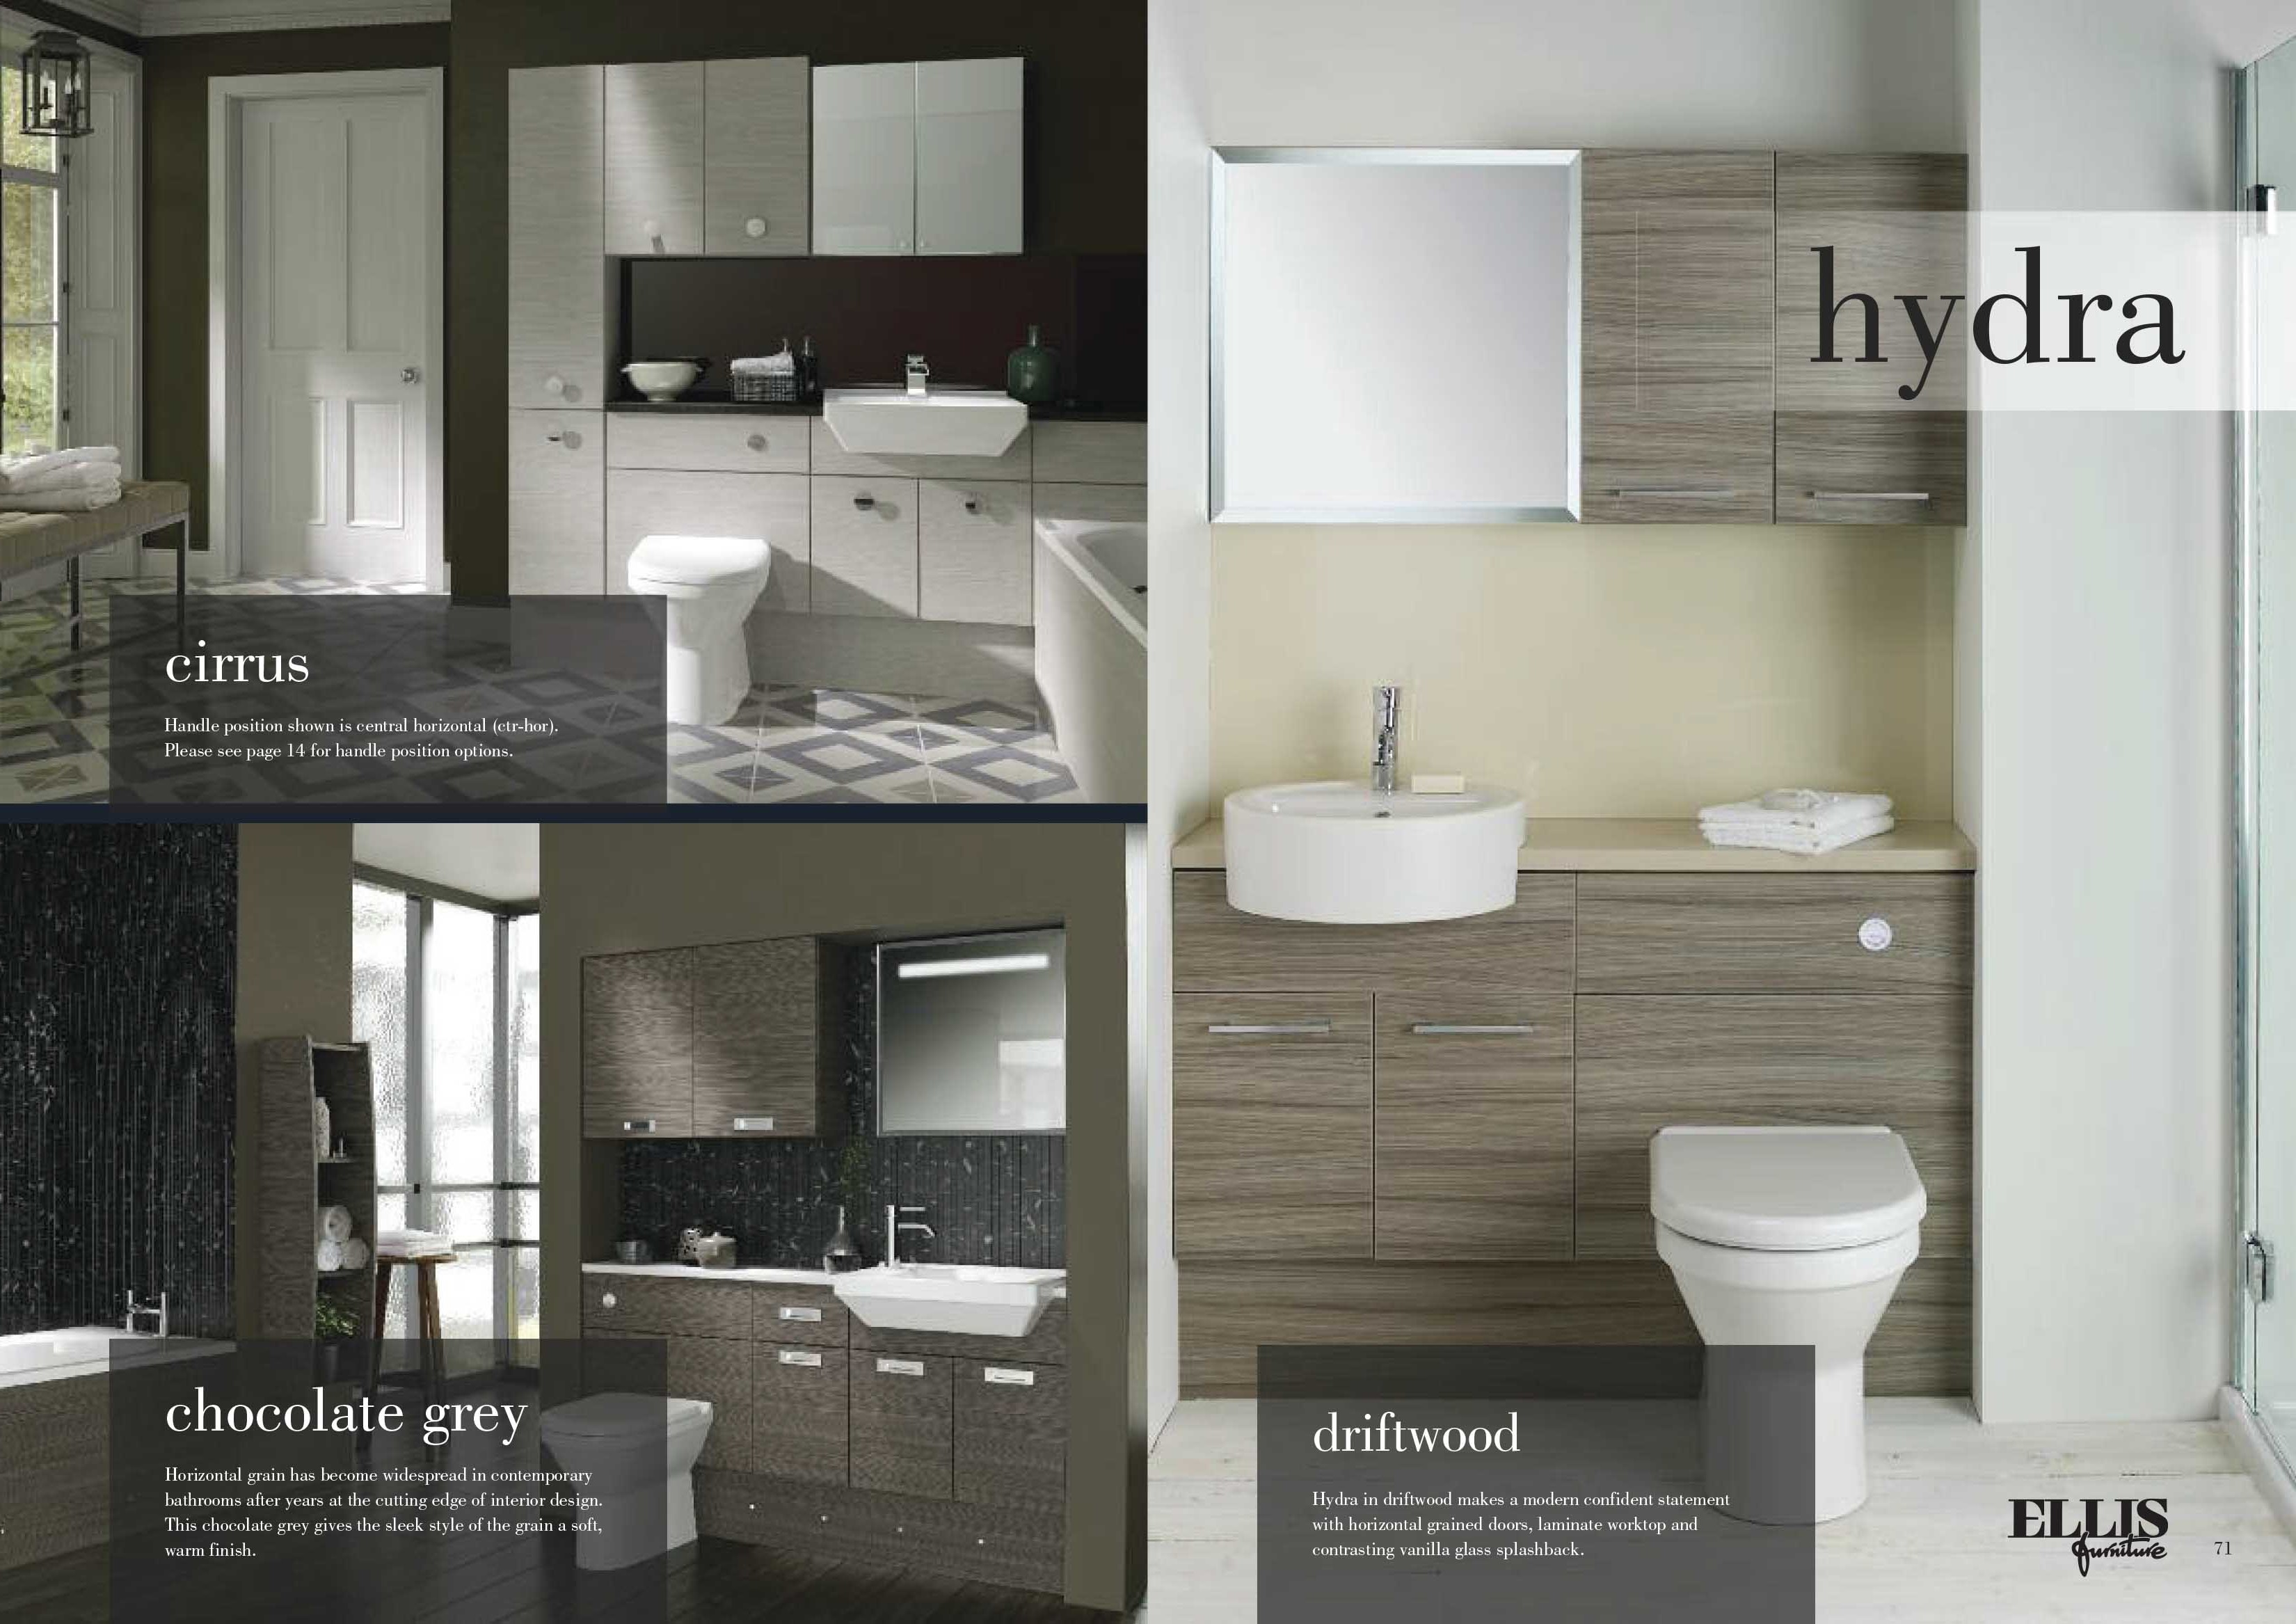 Ellis bathroom brochure may 2014pdf bathroom interior for Bathroom design pdf